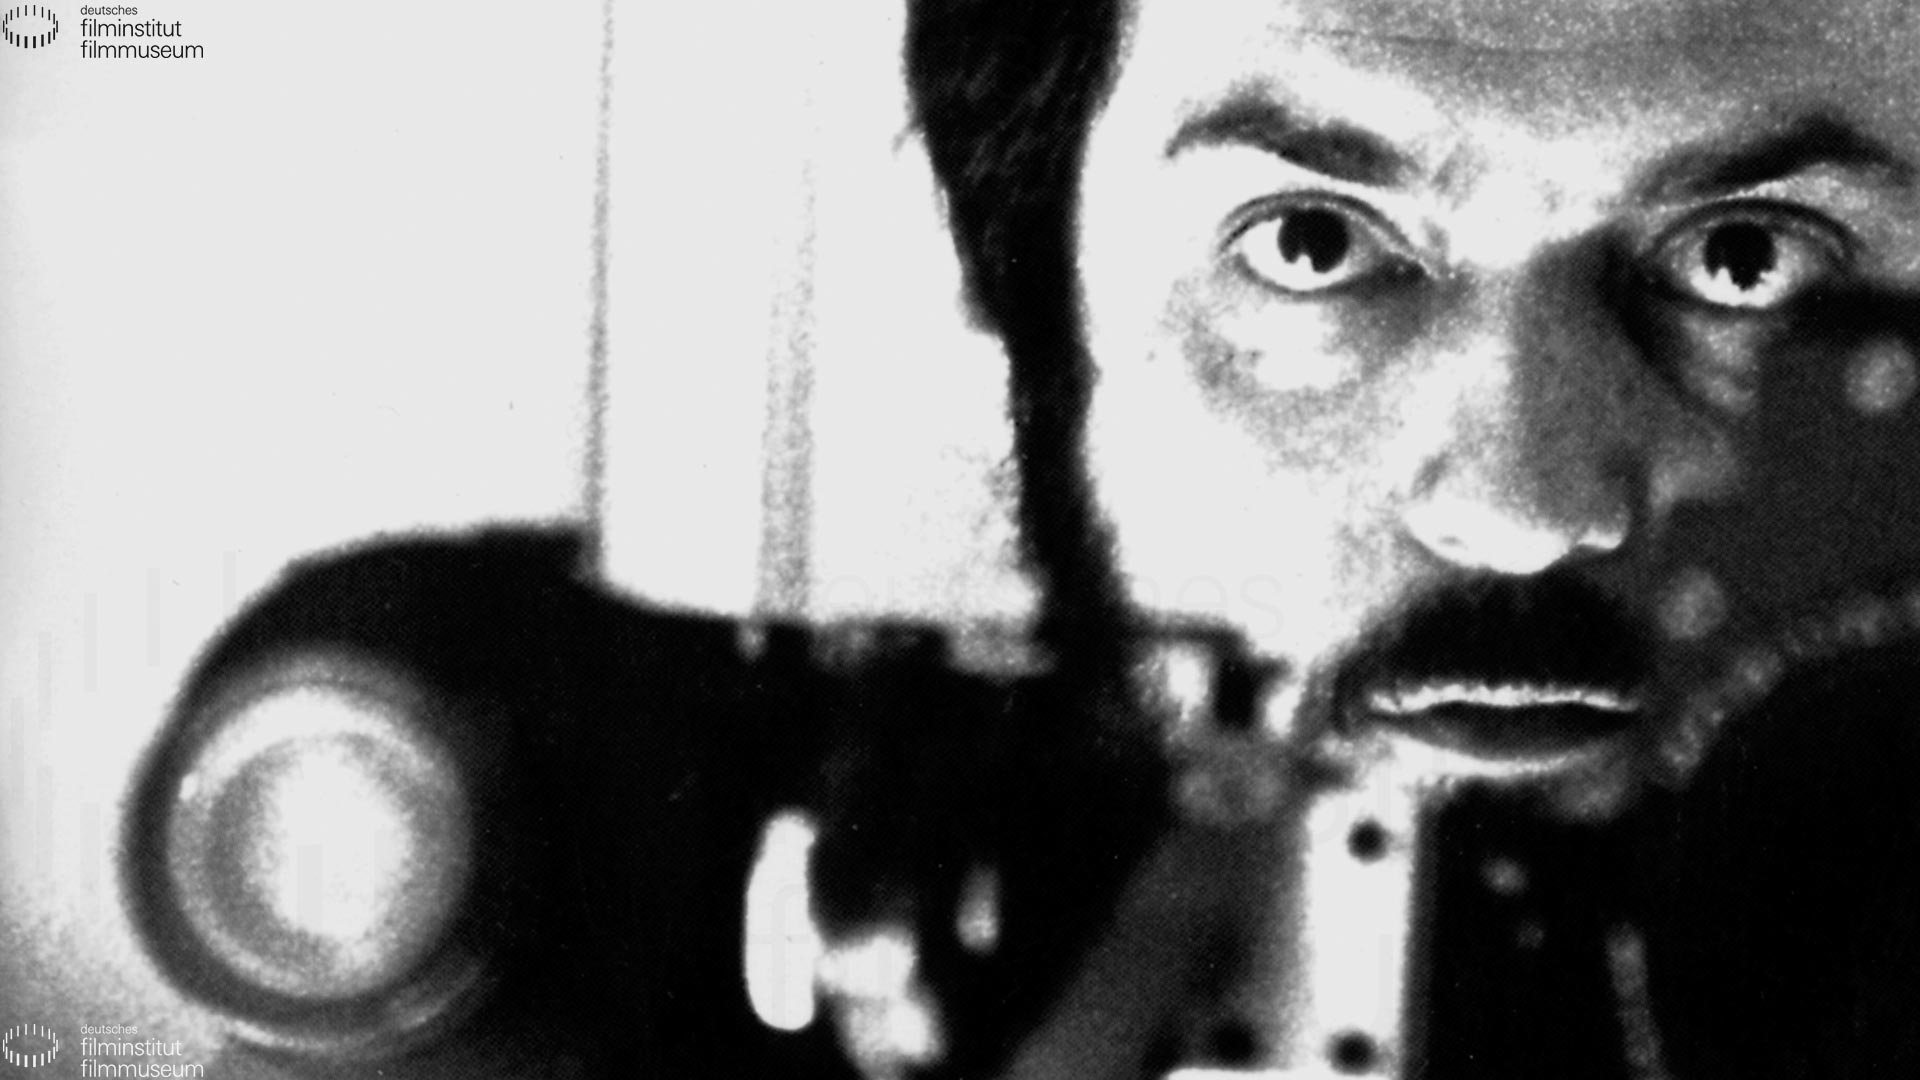 1999 Stanley Kubrick dies on the 7th of March after suffering a heart attack at his home near St. Albans, four months before the première of EYES WIDE SHUT